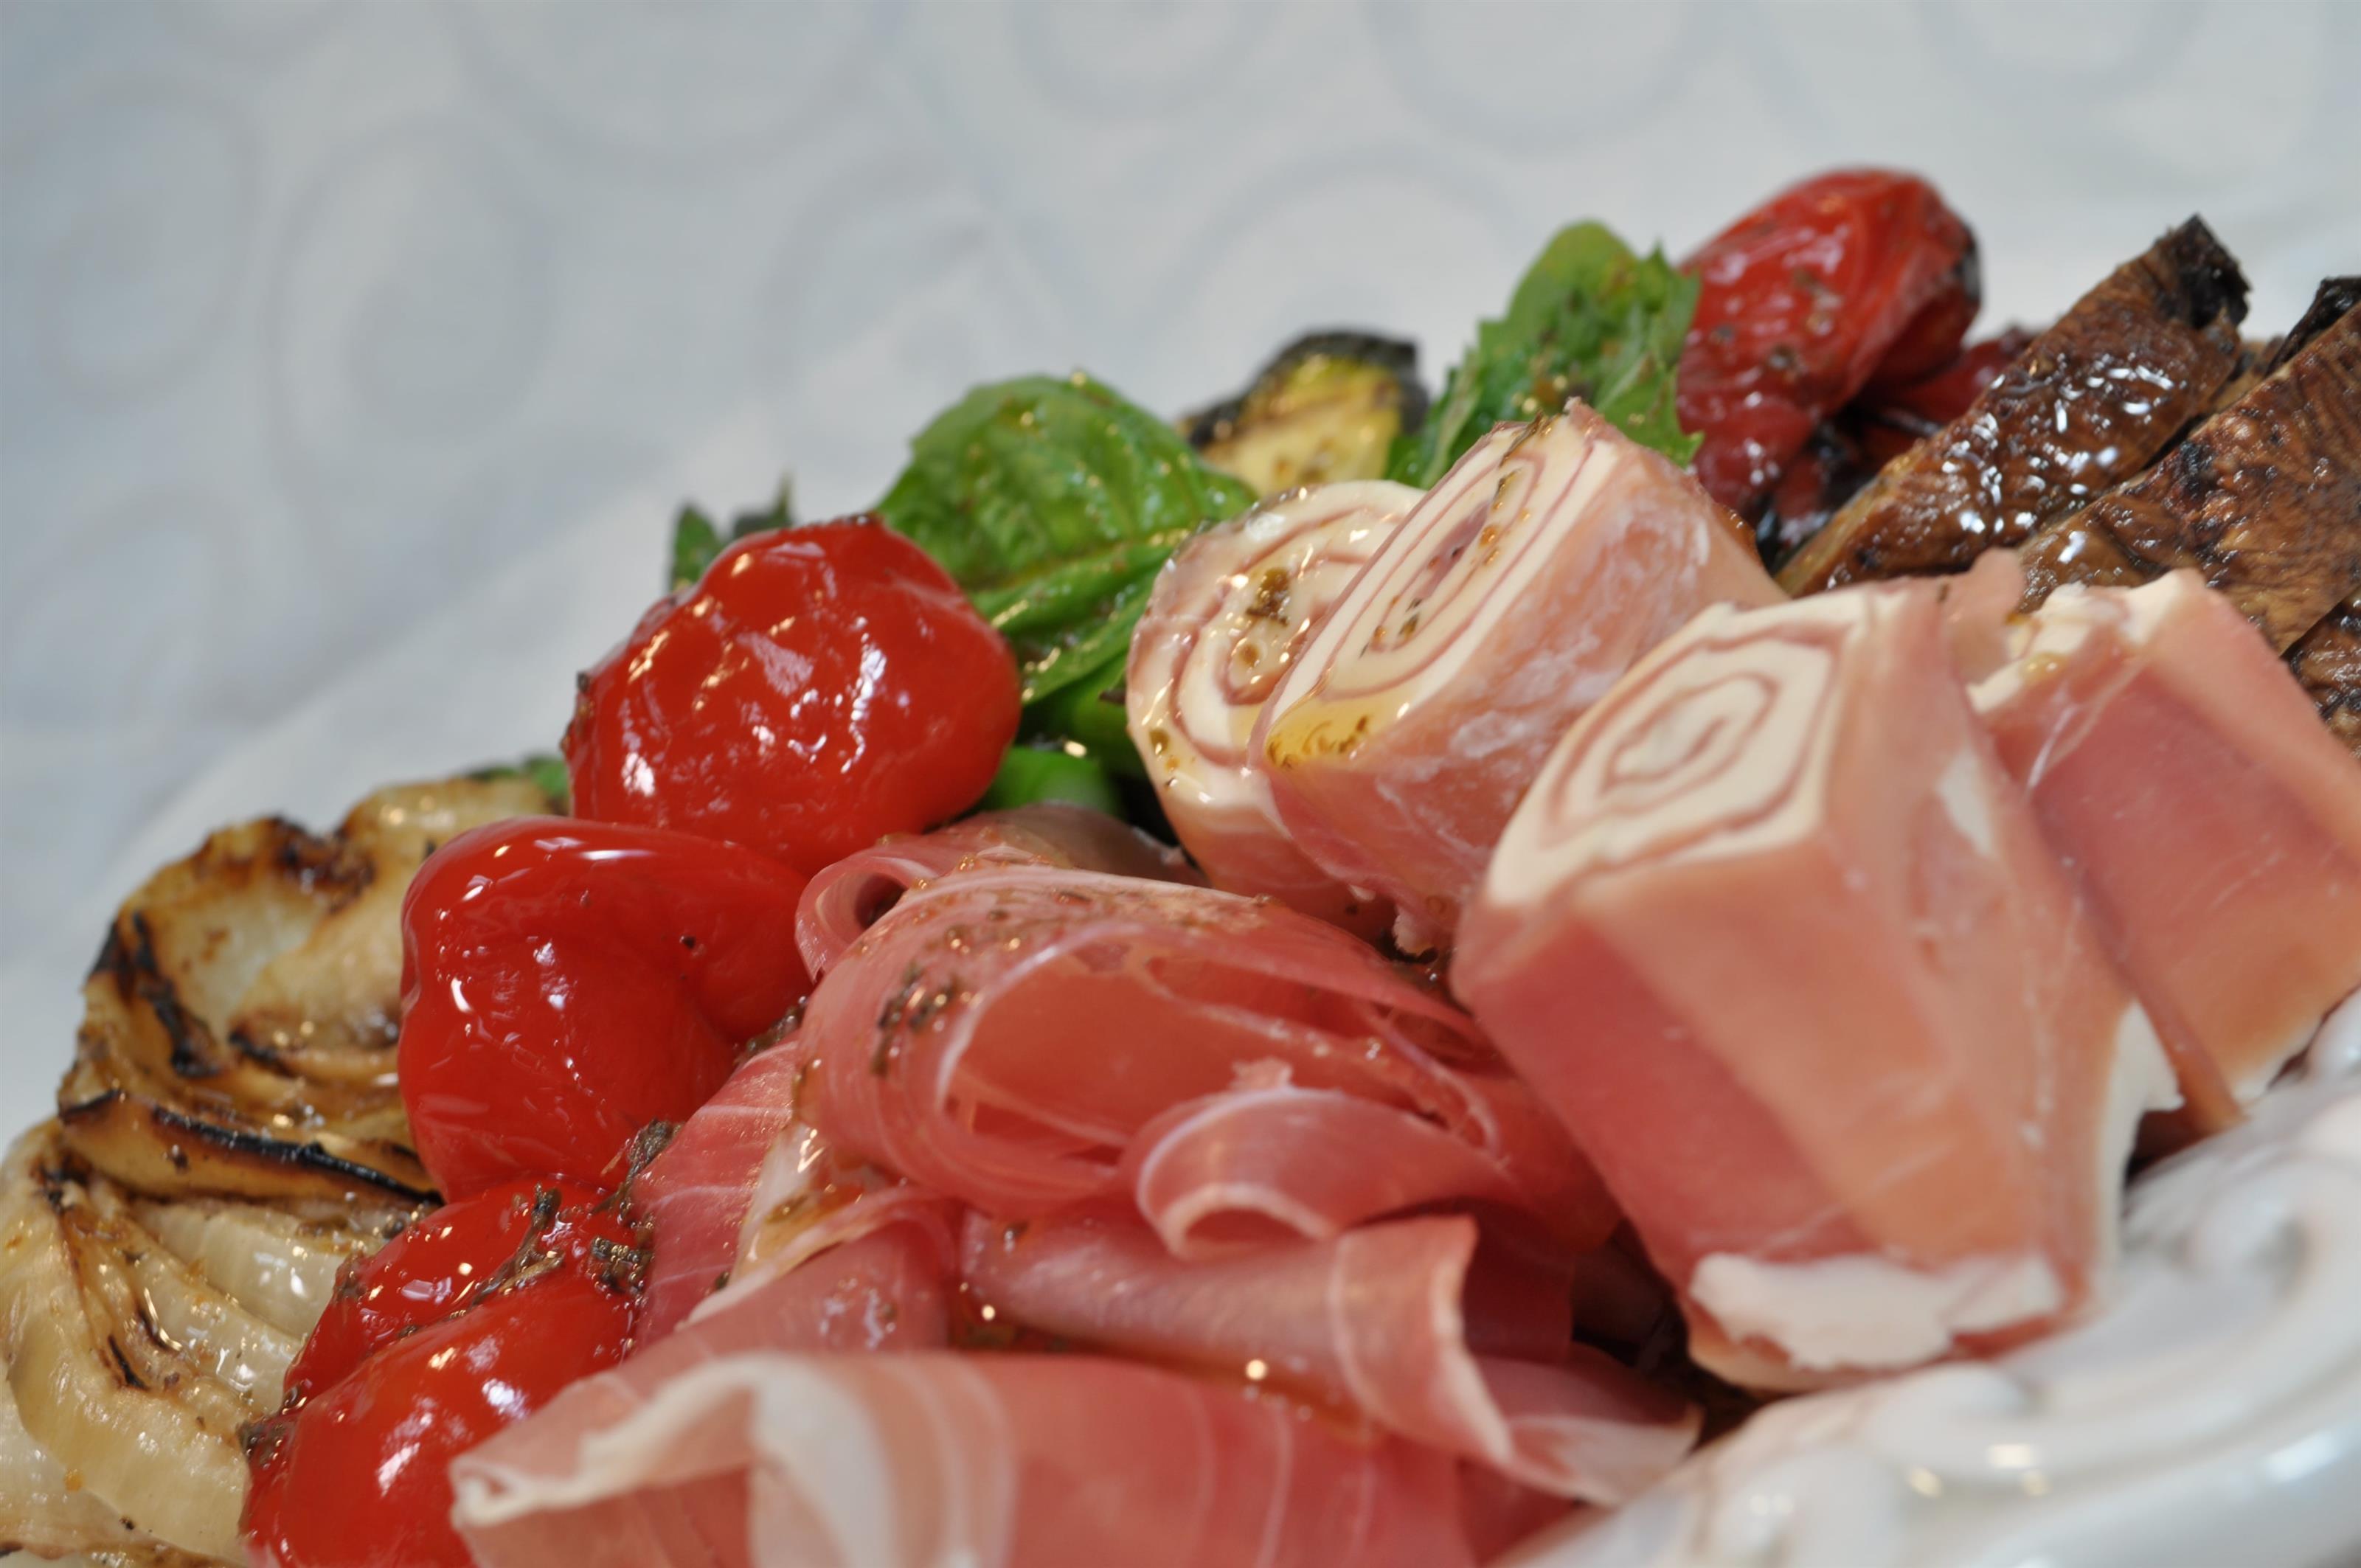 antipasto salad with meats, cheeses and vegetables